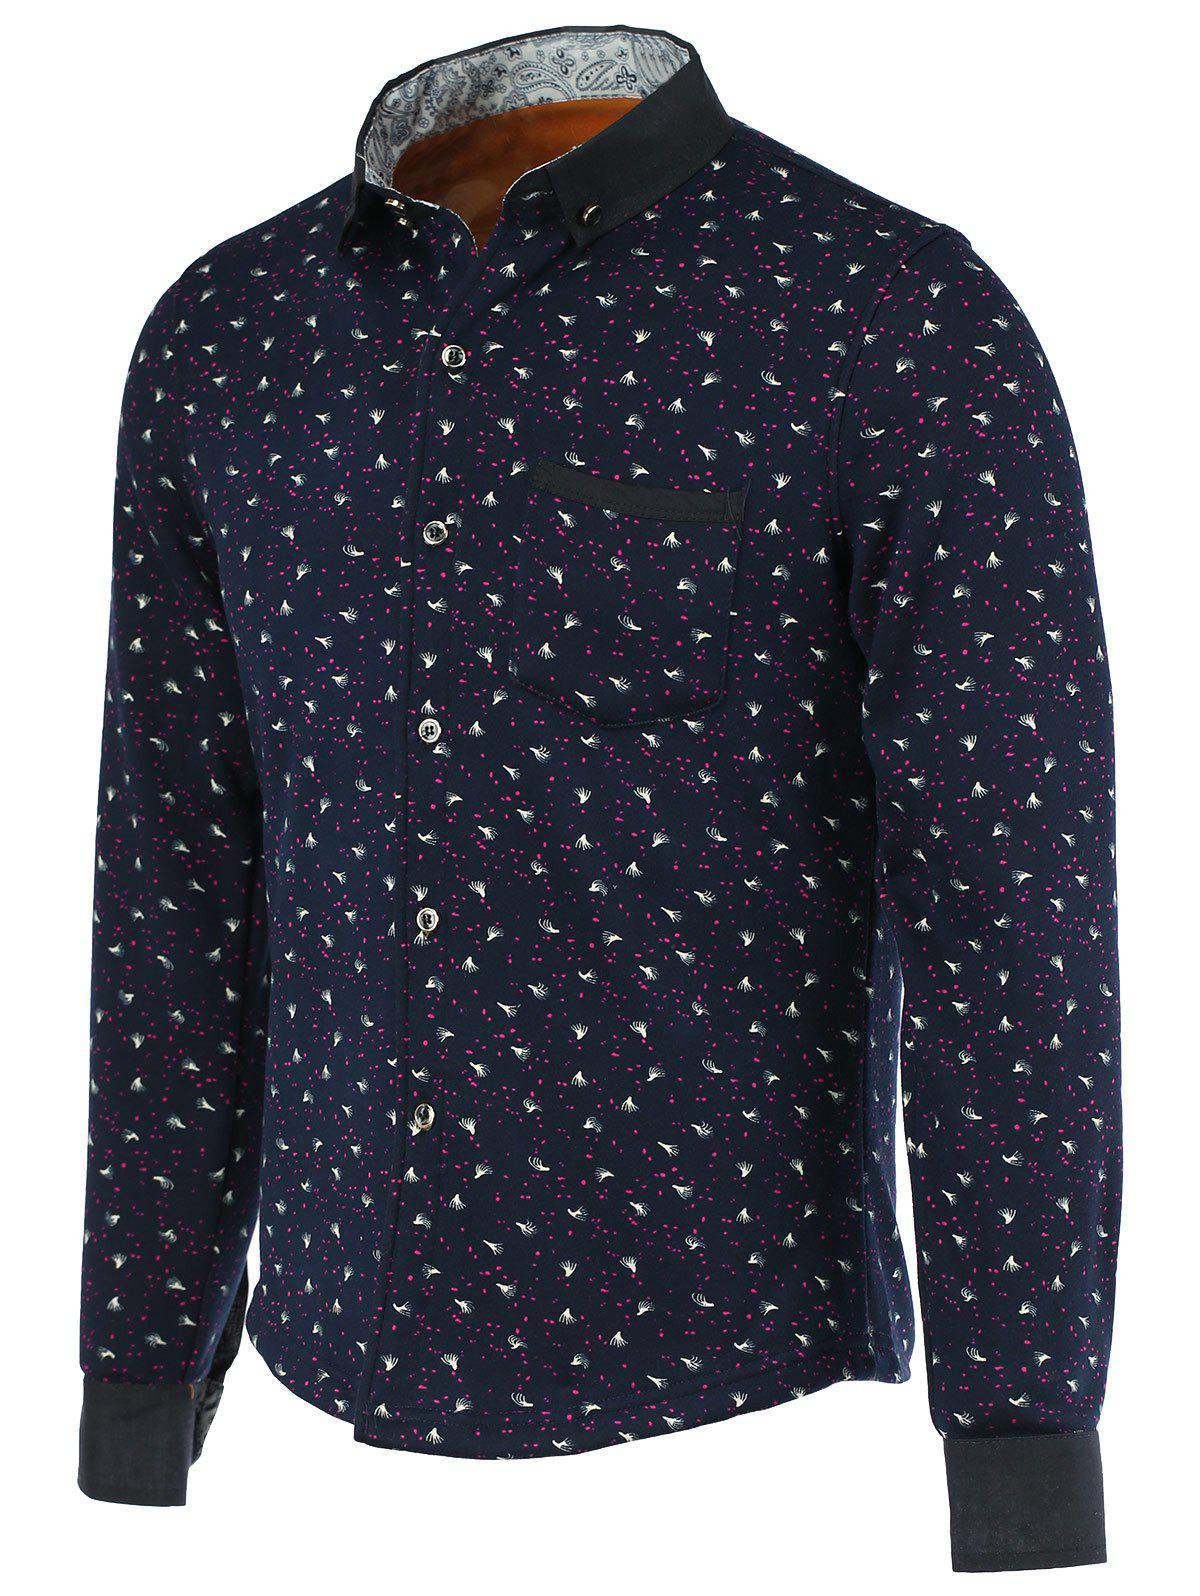 Ink Dot and Feather Print Fleece Turn-Down Collar Long Sleeve Button-Down Men's Shirt